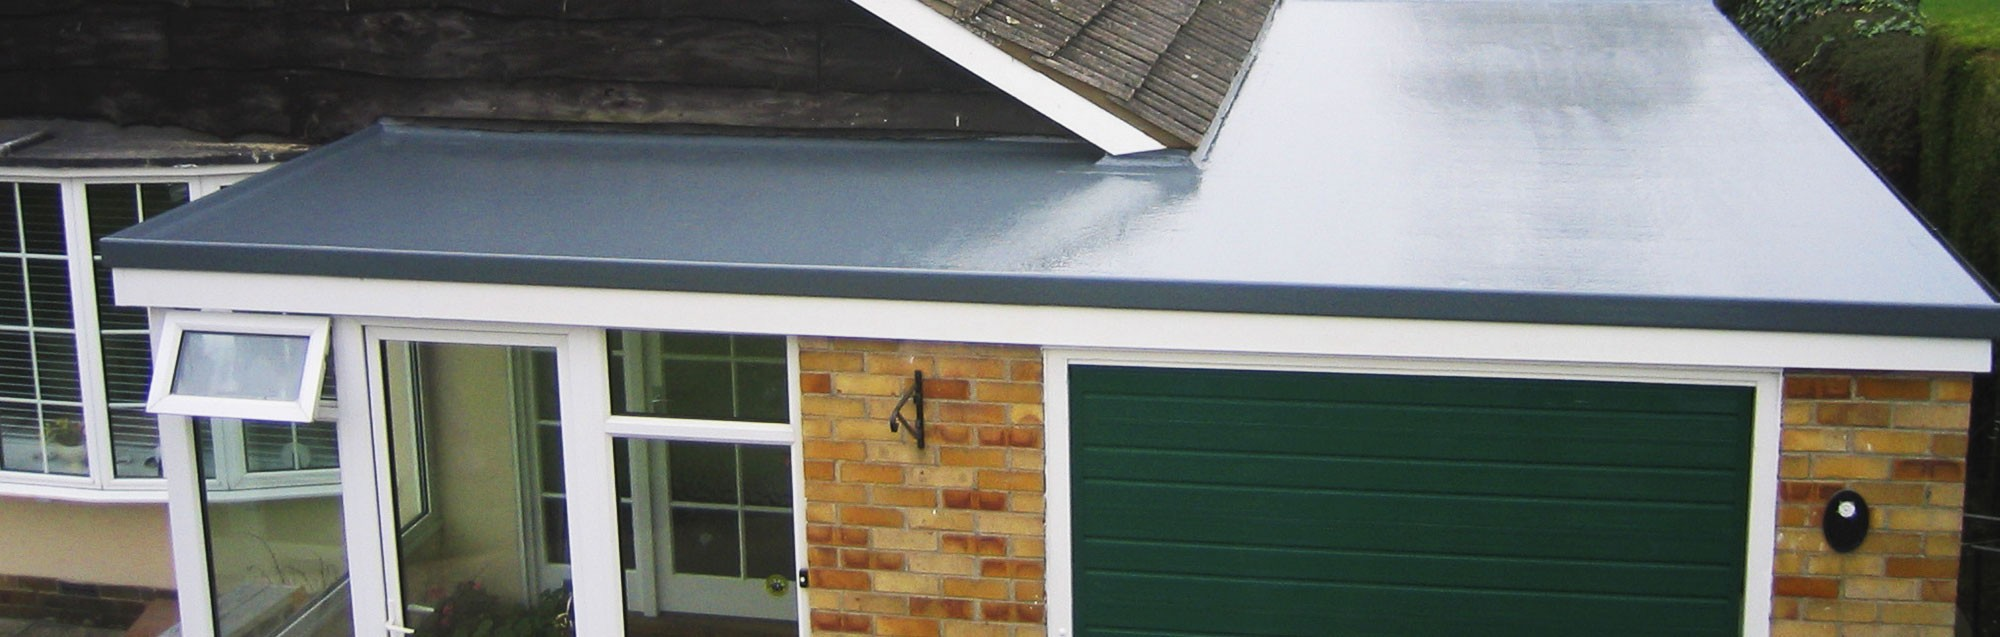 Roof over a garage